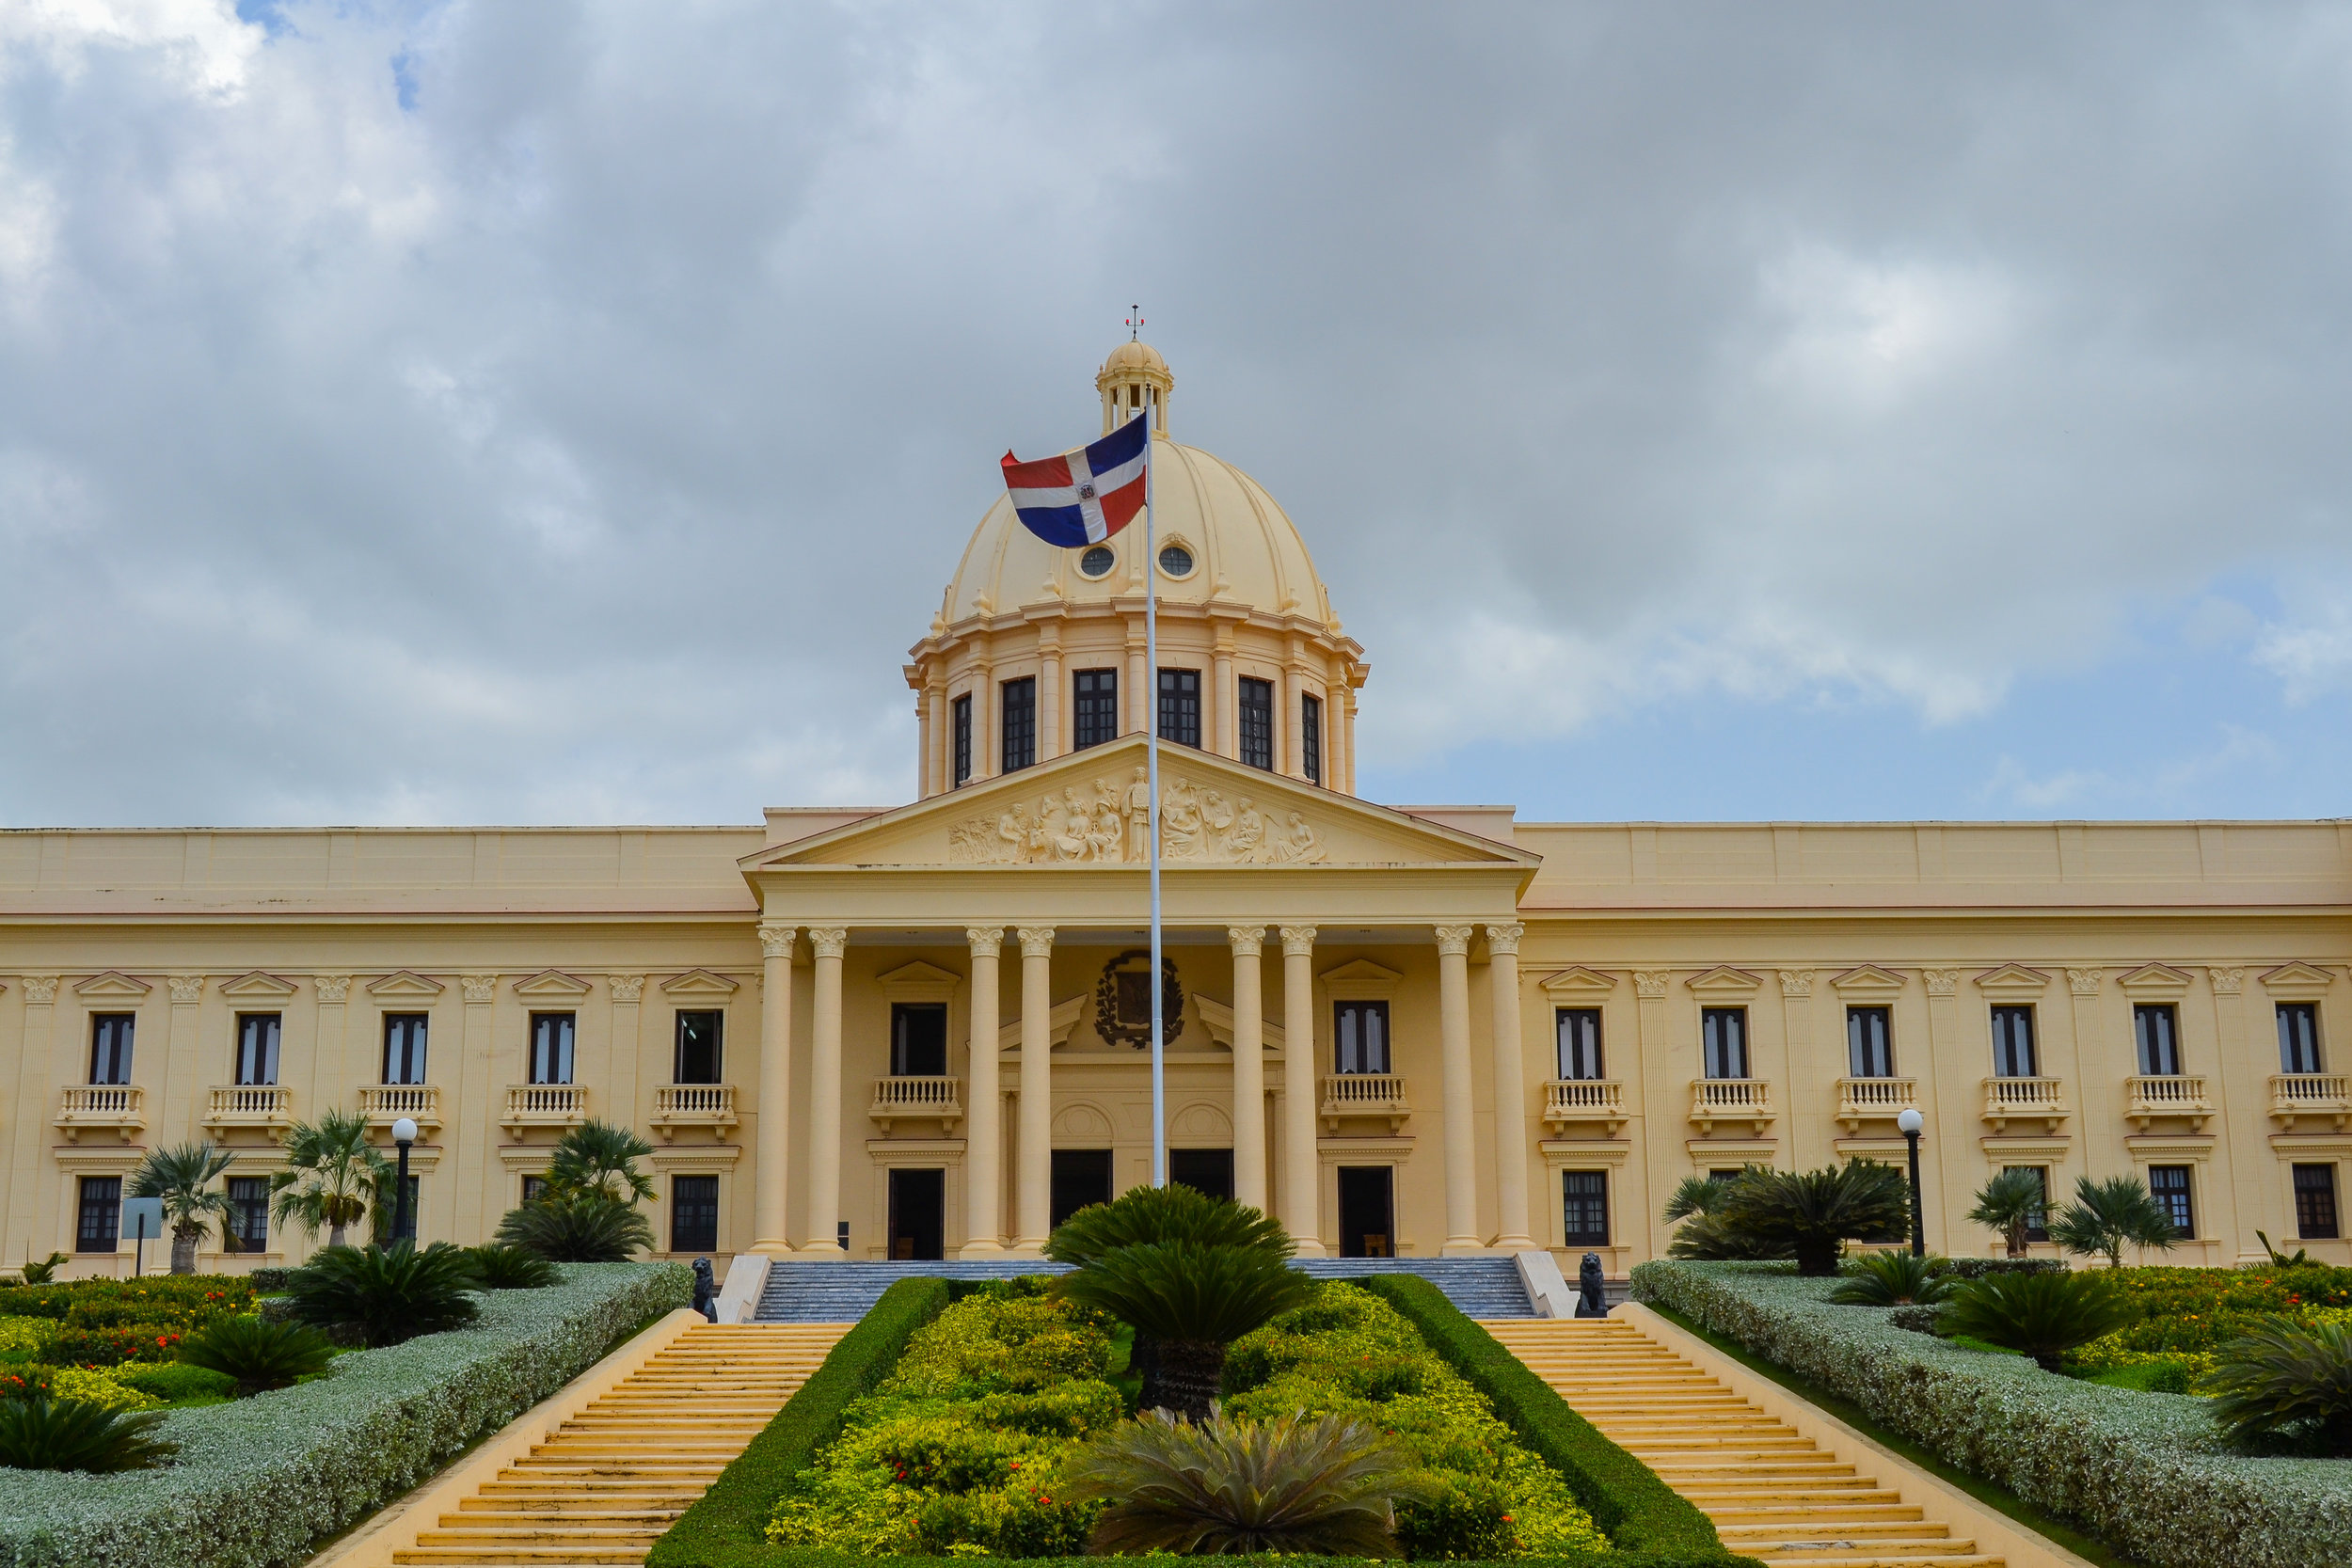 The National Palace of the Dominican Republic